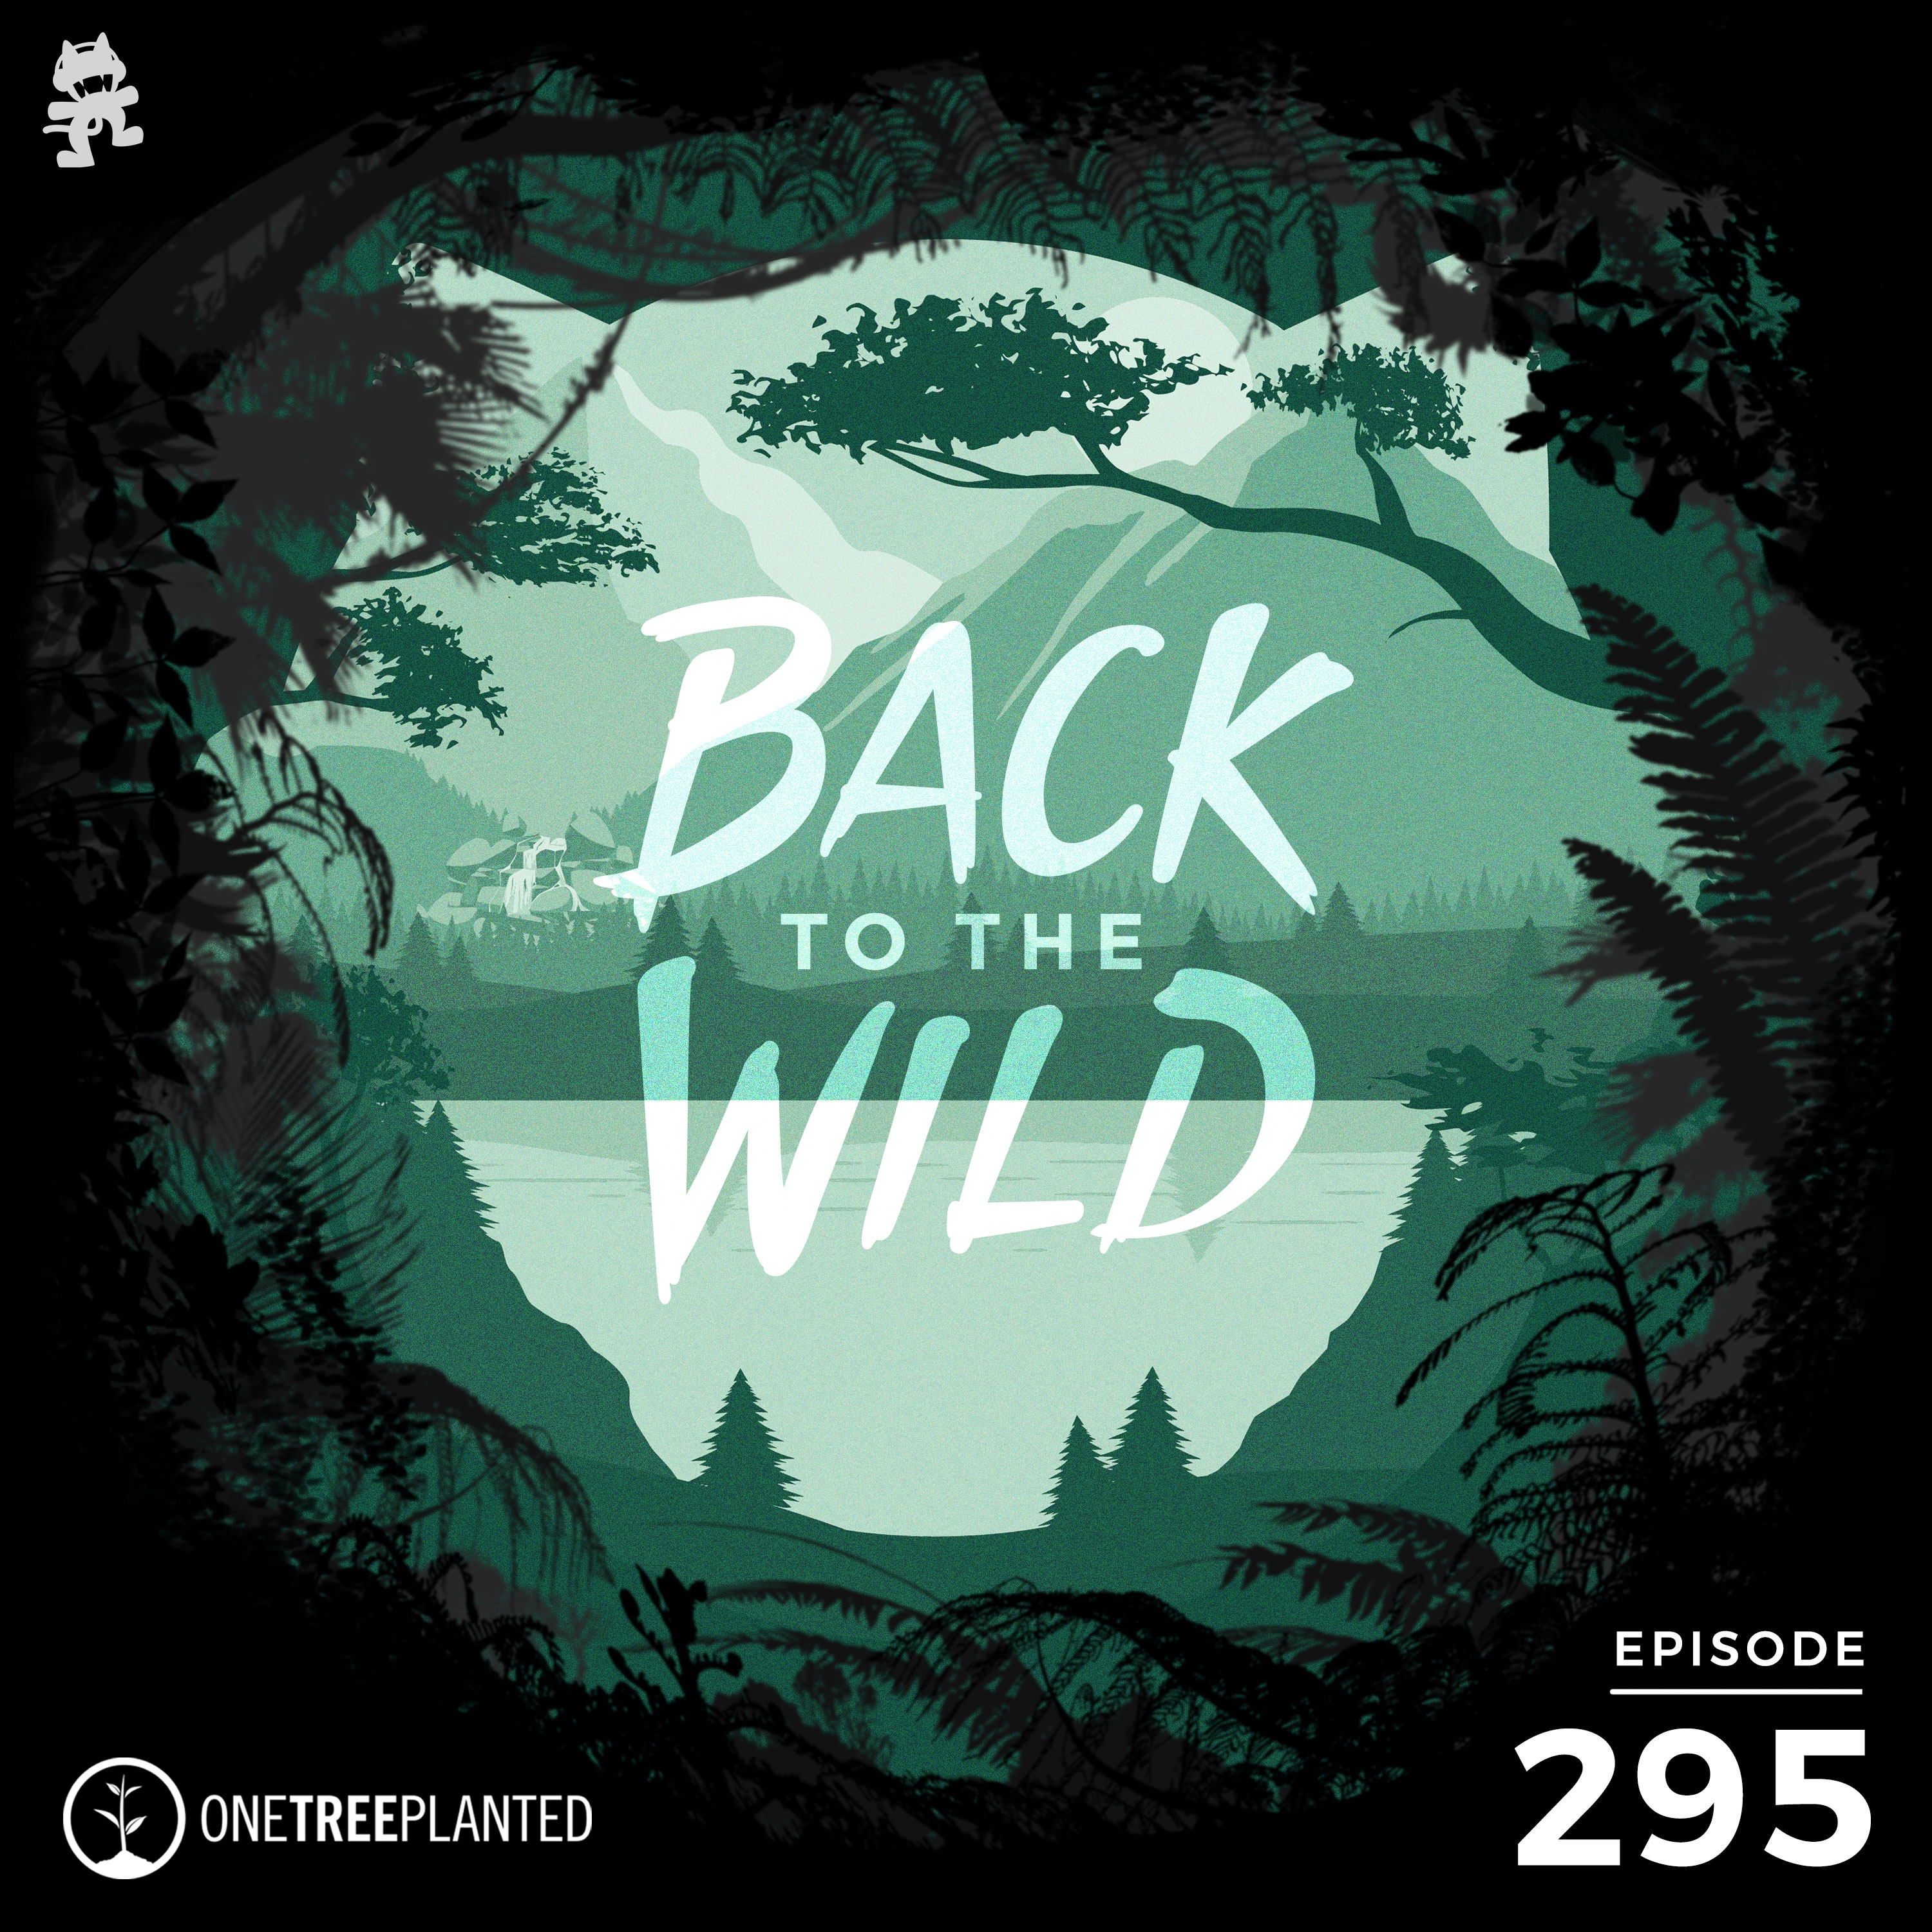 Monstercat: Call of the Wild - Episode 295